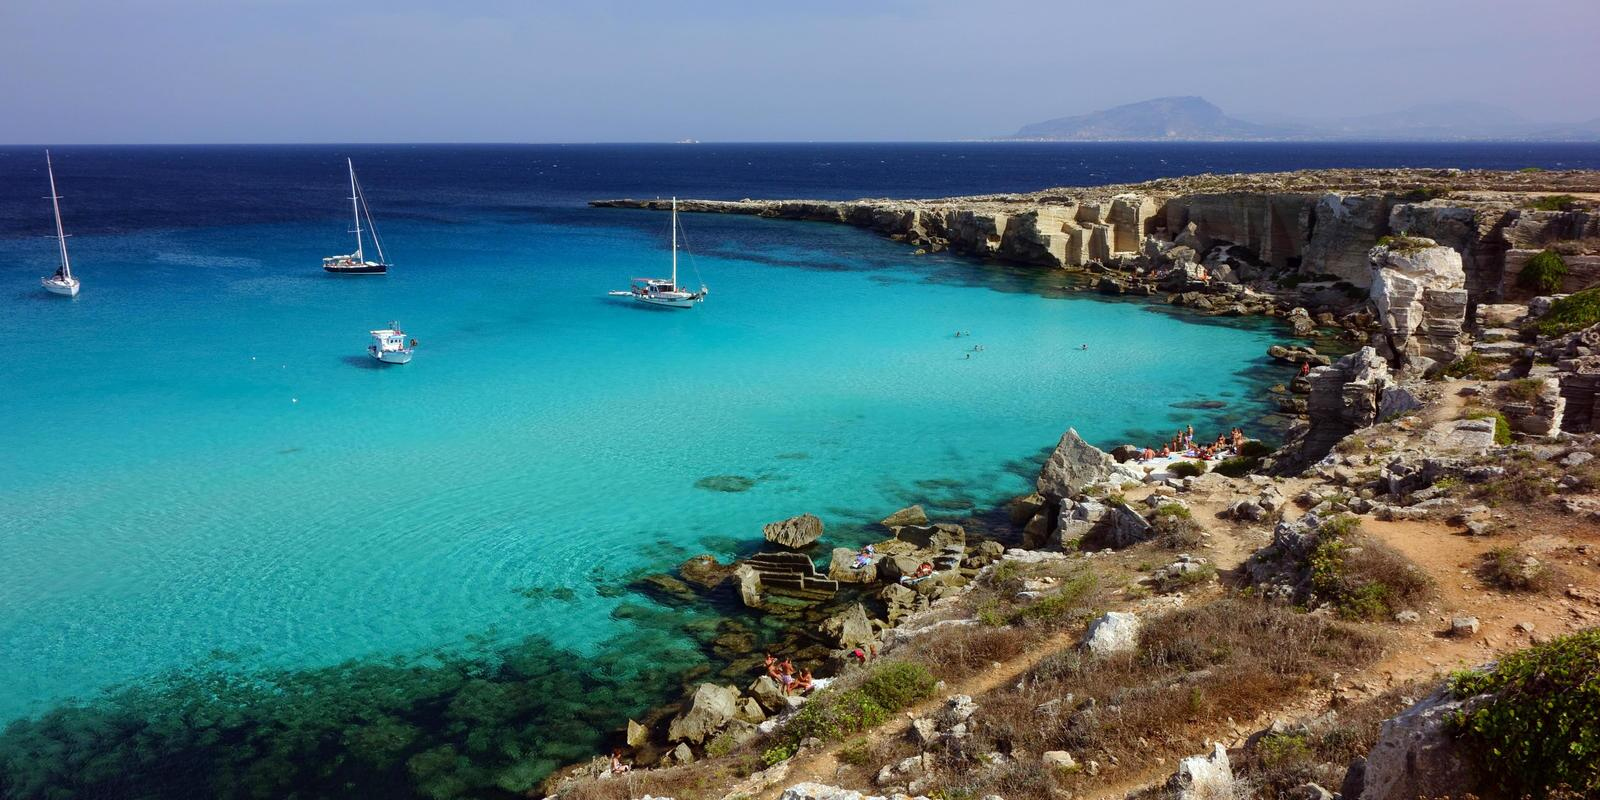 From the Zingaro reserve to the Egadi islands: sailing to discover north-western Sicily